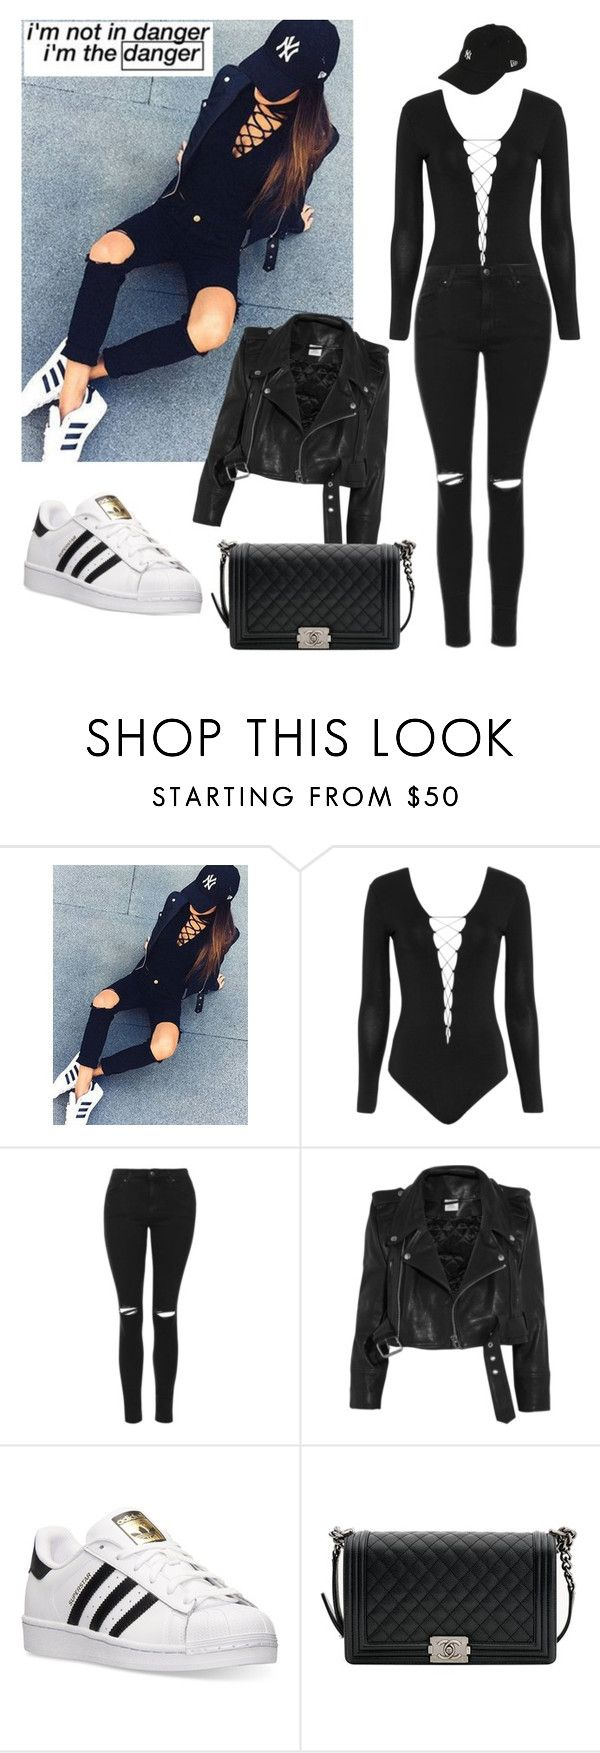 """""""I'm not in danger.I'm the danger."""" by maryanacoolstyles ❤ liked on Polyvore featuring Alexander Wang, Topshop, Vetements, adidas, Chanel and New Era"""